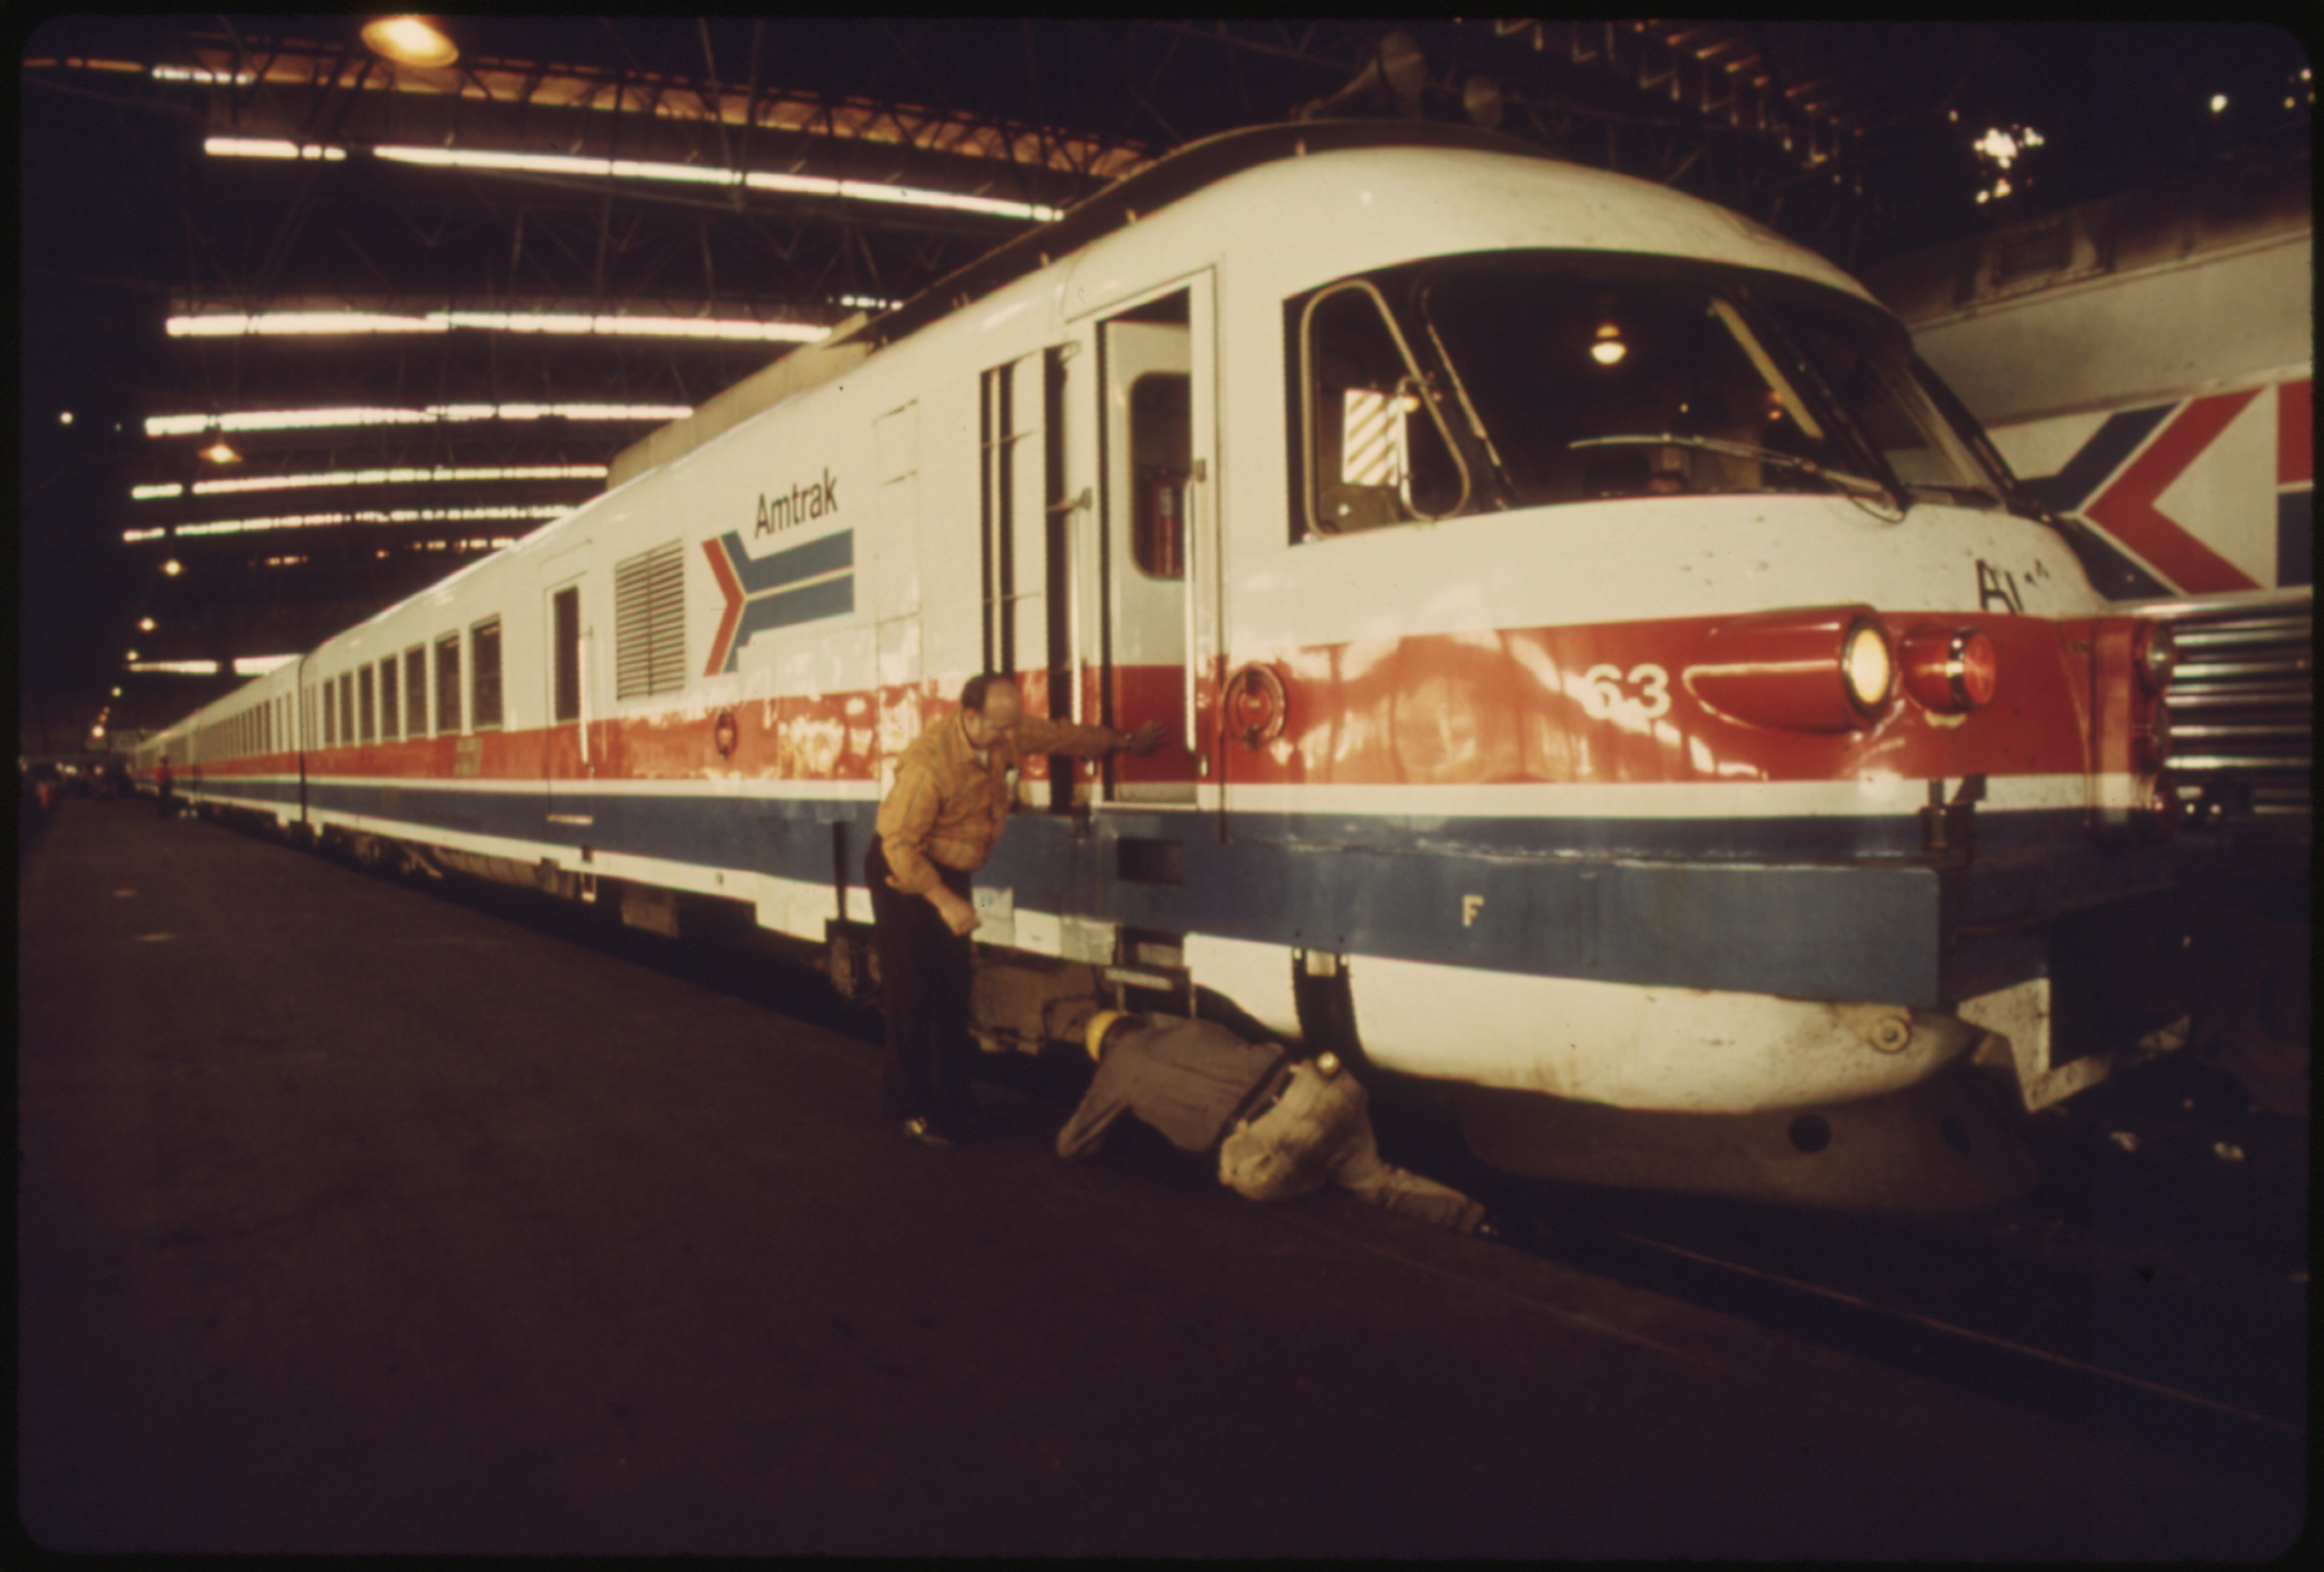 File:LAST MINUTE CHECK OF THE ENGINE OF THE AMTRAK TURBOLINER